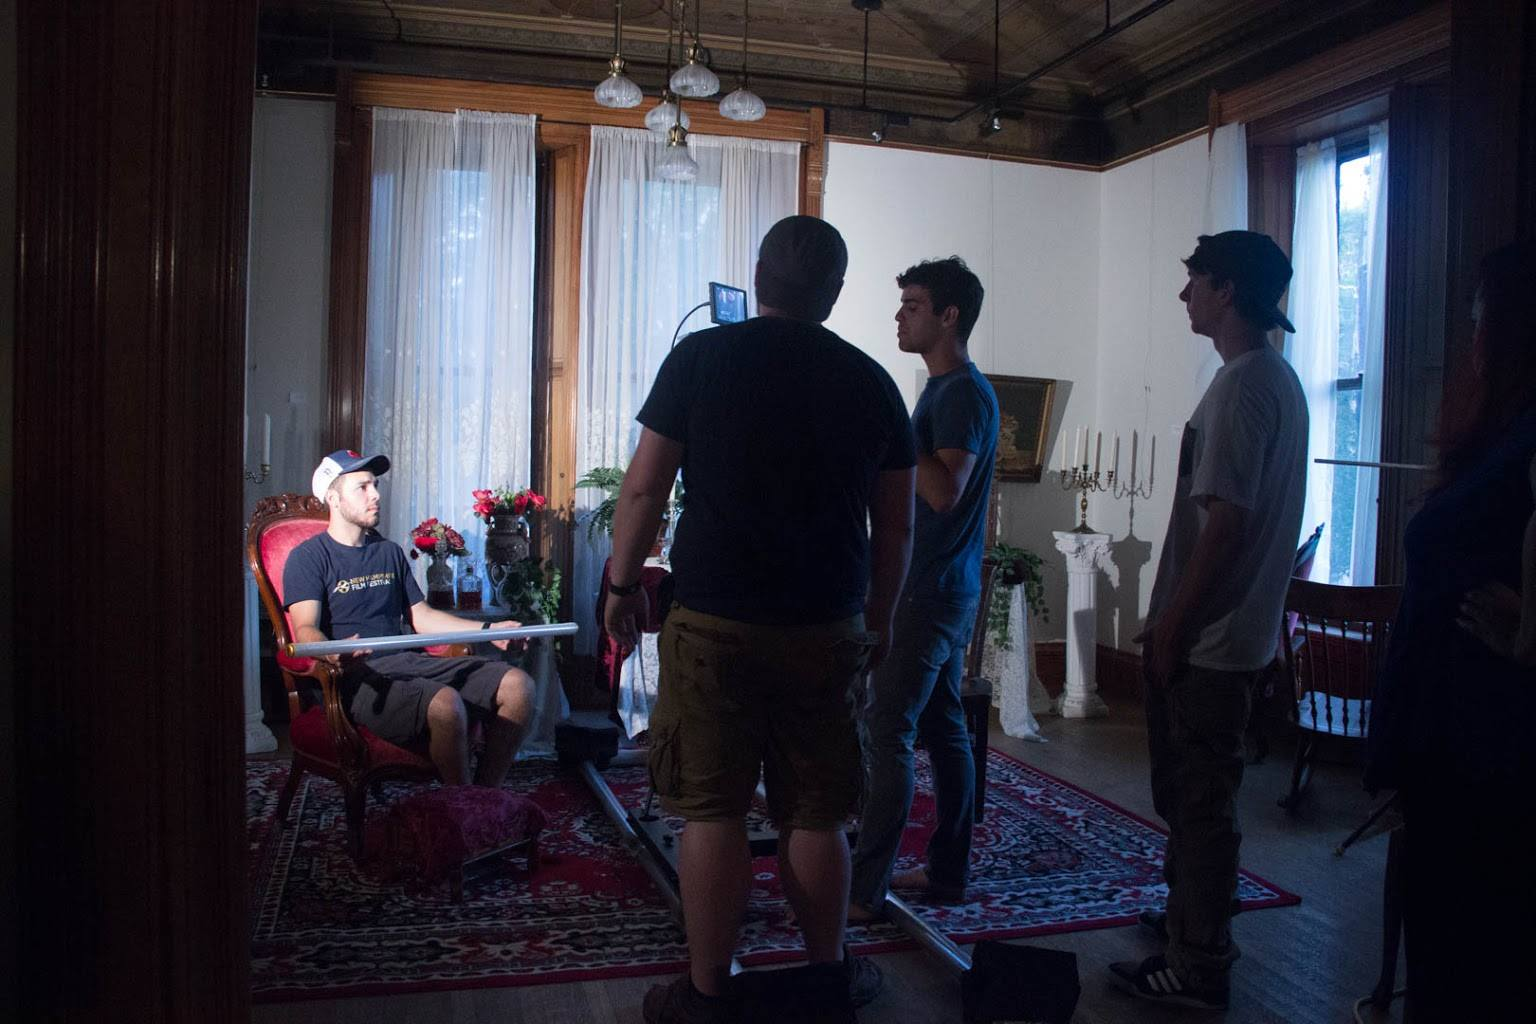 Production Day #1. Directors of Photography, Jonathan Geddis and Jonathan Olson work with Director Pedro Pimentel on set.